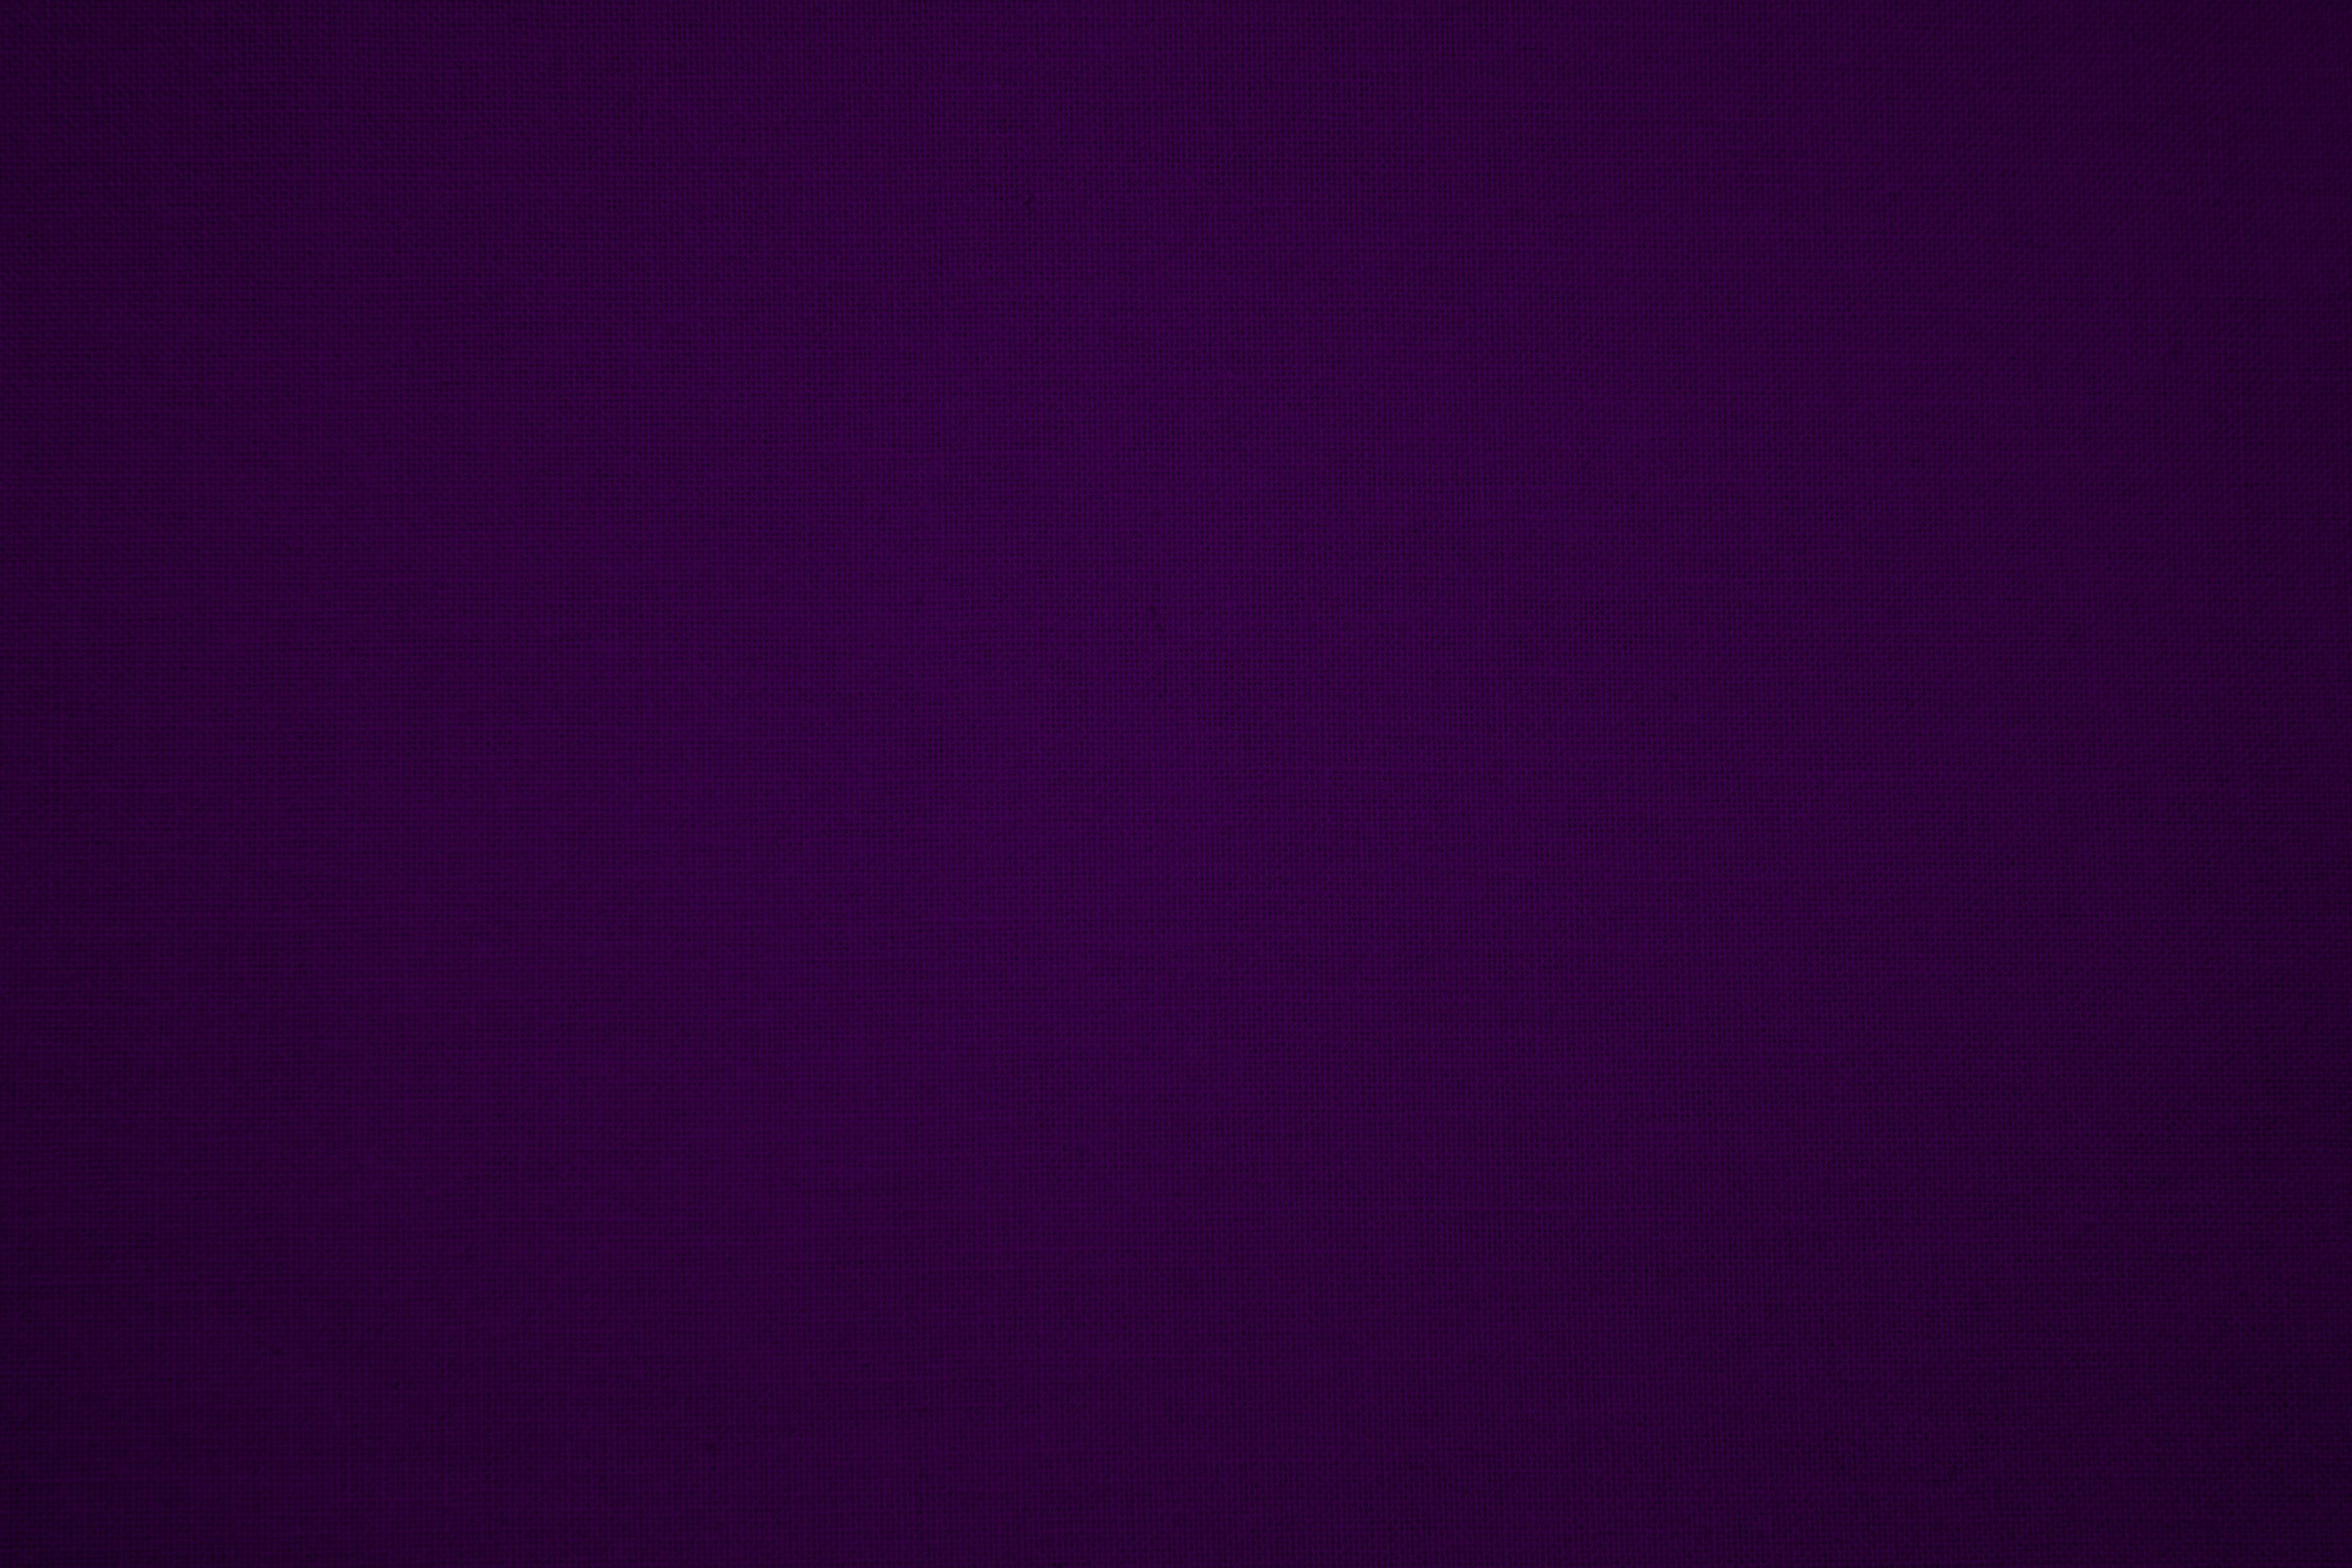 Wallpapers For Plain Dark Purple Backgrounds 3600x2400